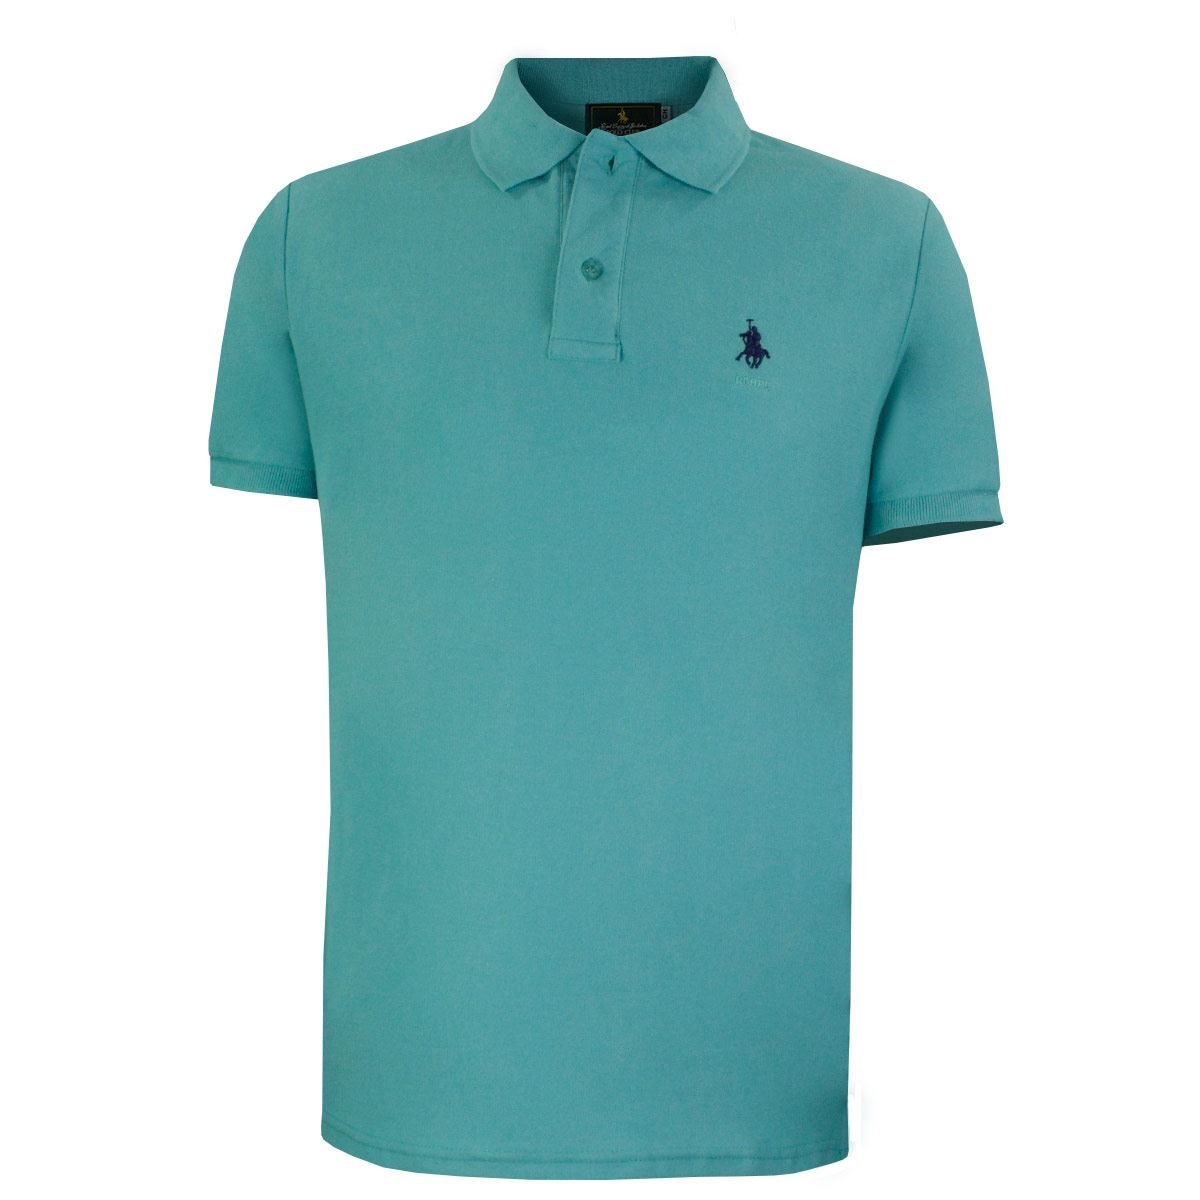 Playera Polo Club Mc Pique Algodón Md Aqua